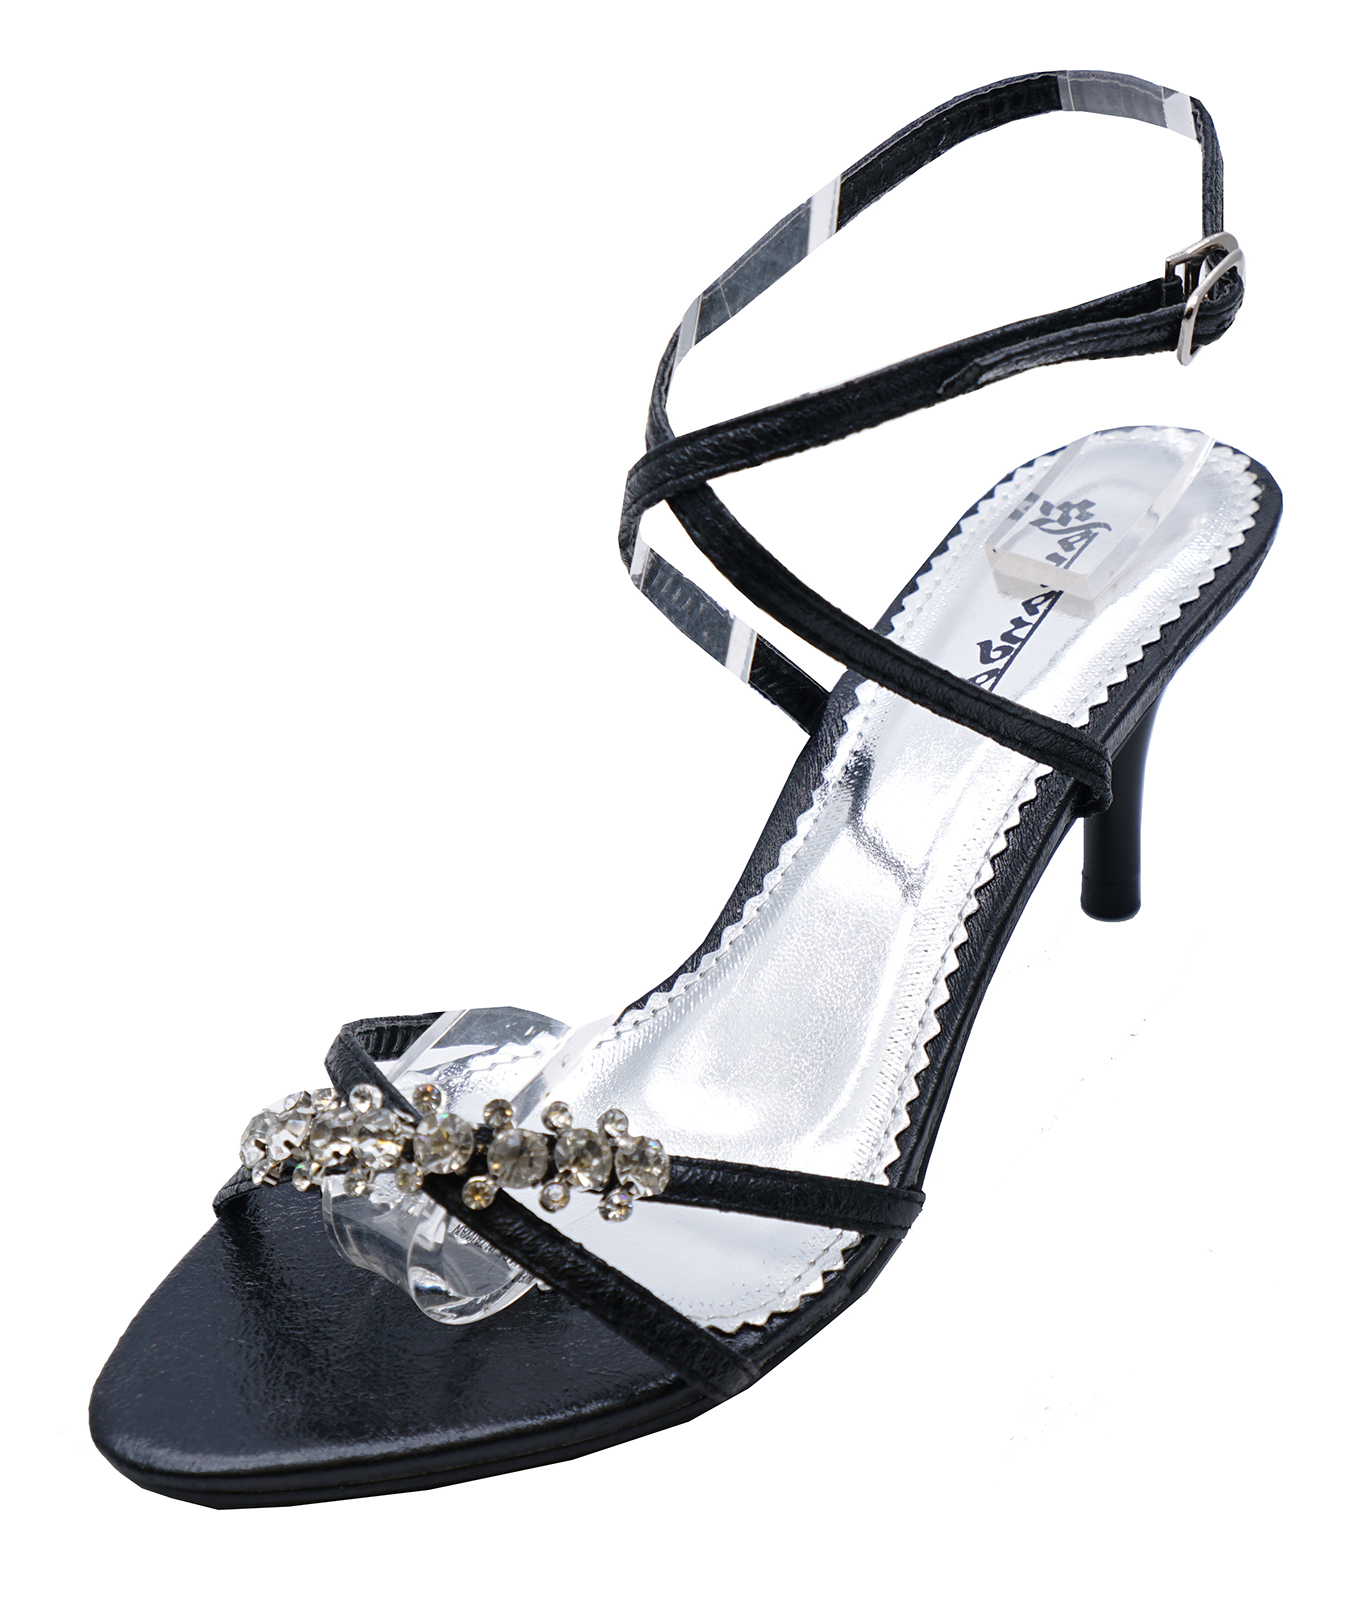 2ce888400d4f4 Ladies Black Kitten Heel Strappy Evening Diamante Elegant Sandals ...